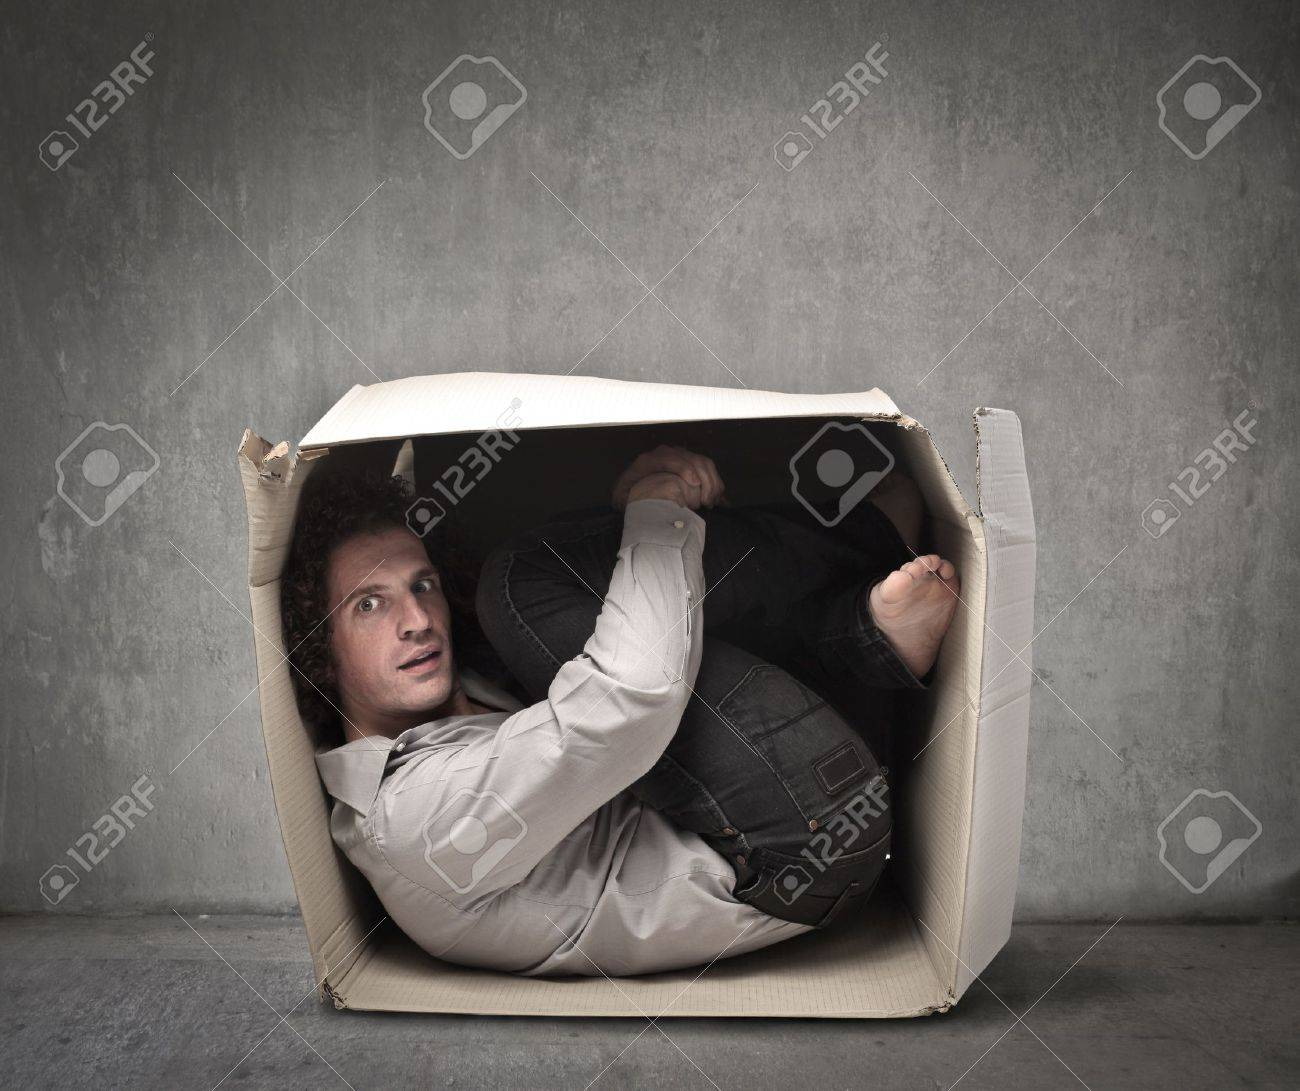 Man crouched in a box Stock Photo - 15662609